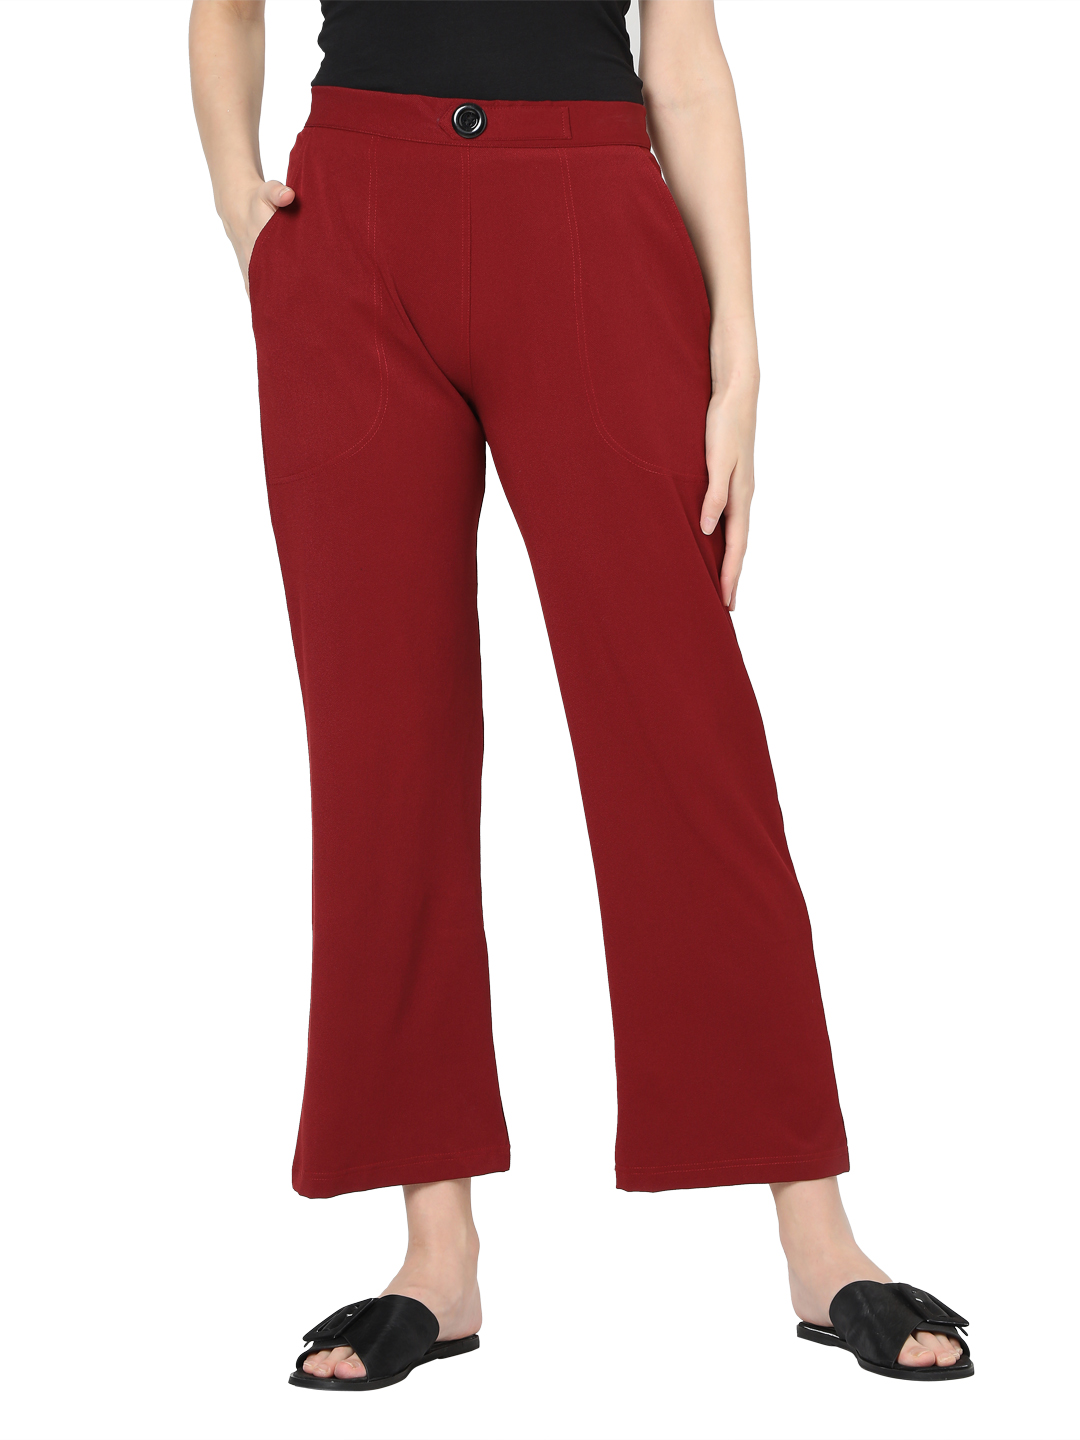 Smarty Pants | Smarty pants women's cotton stretchable wine color ankle length flared trouser